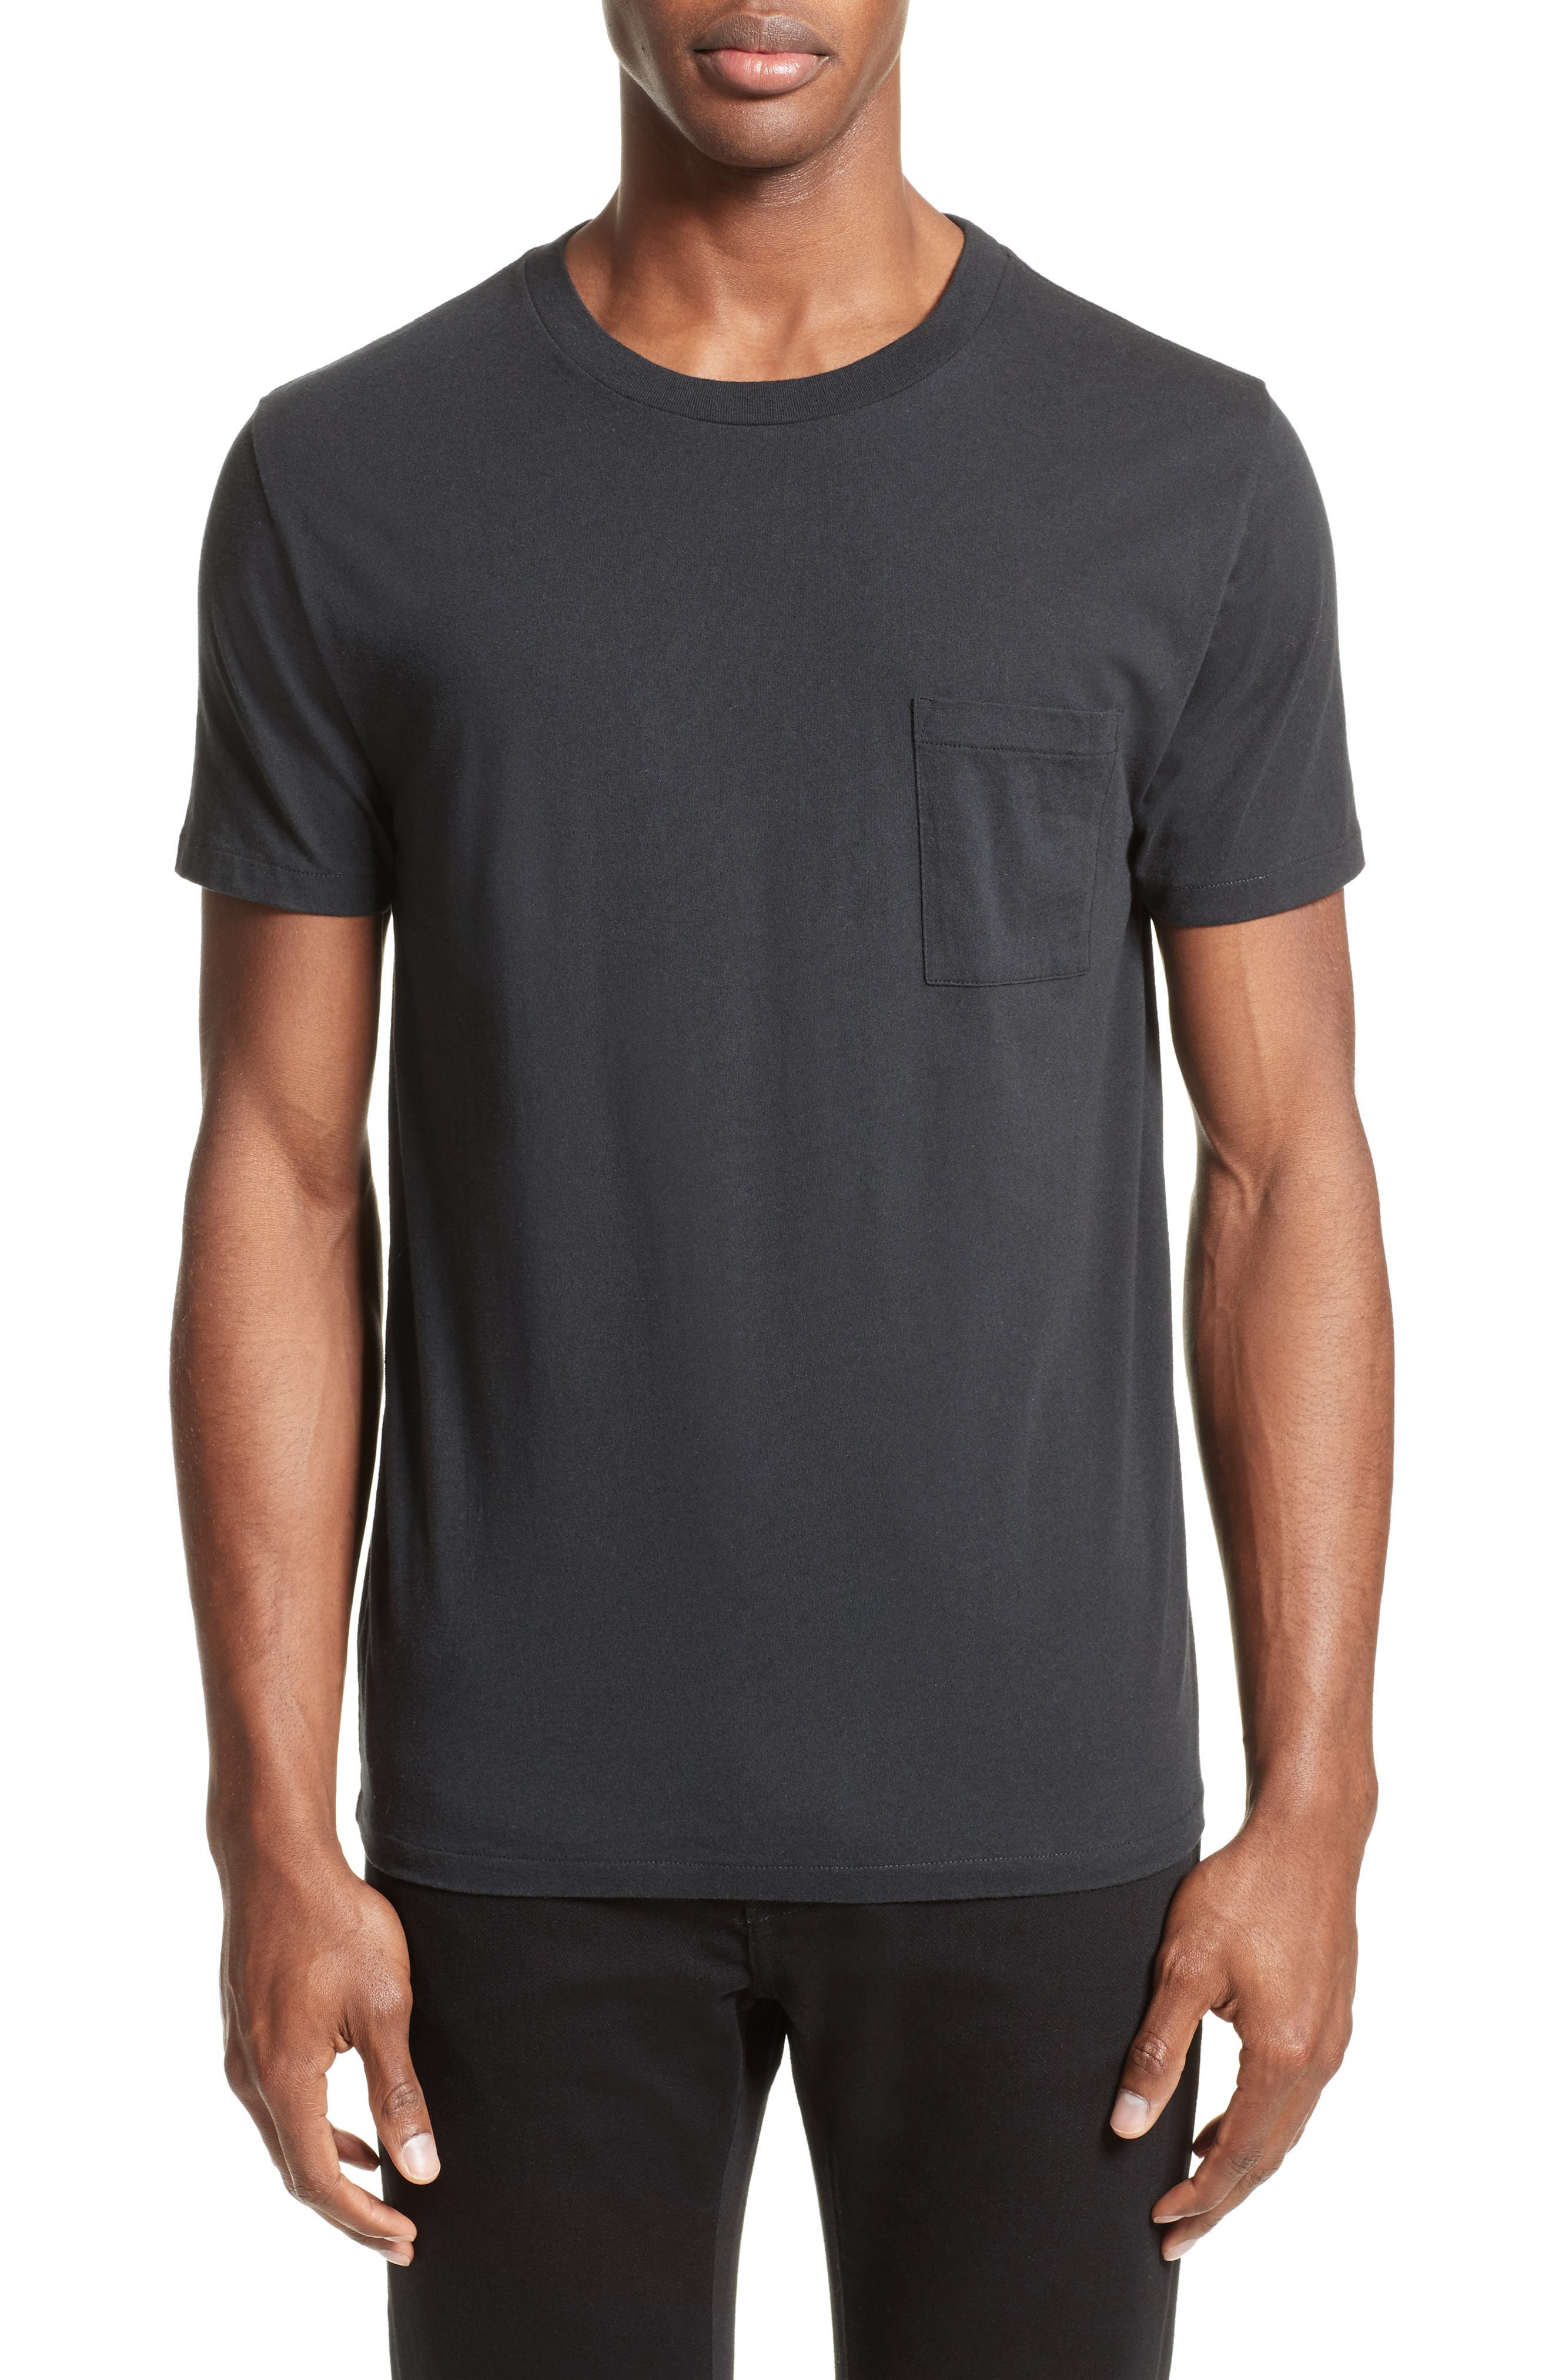 Alternate Image 1 Selected - Levi's® Made & Crafted™ Pocket T-Shirt